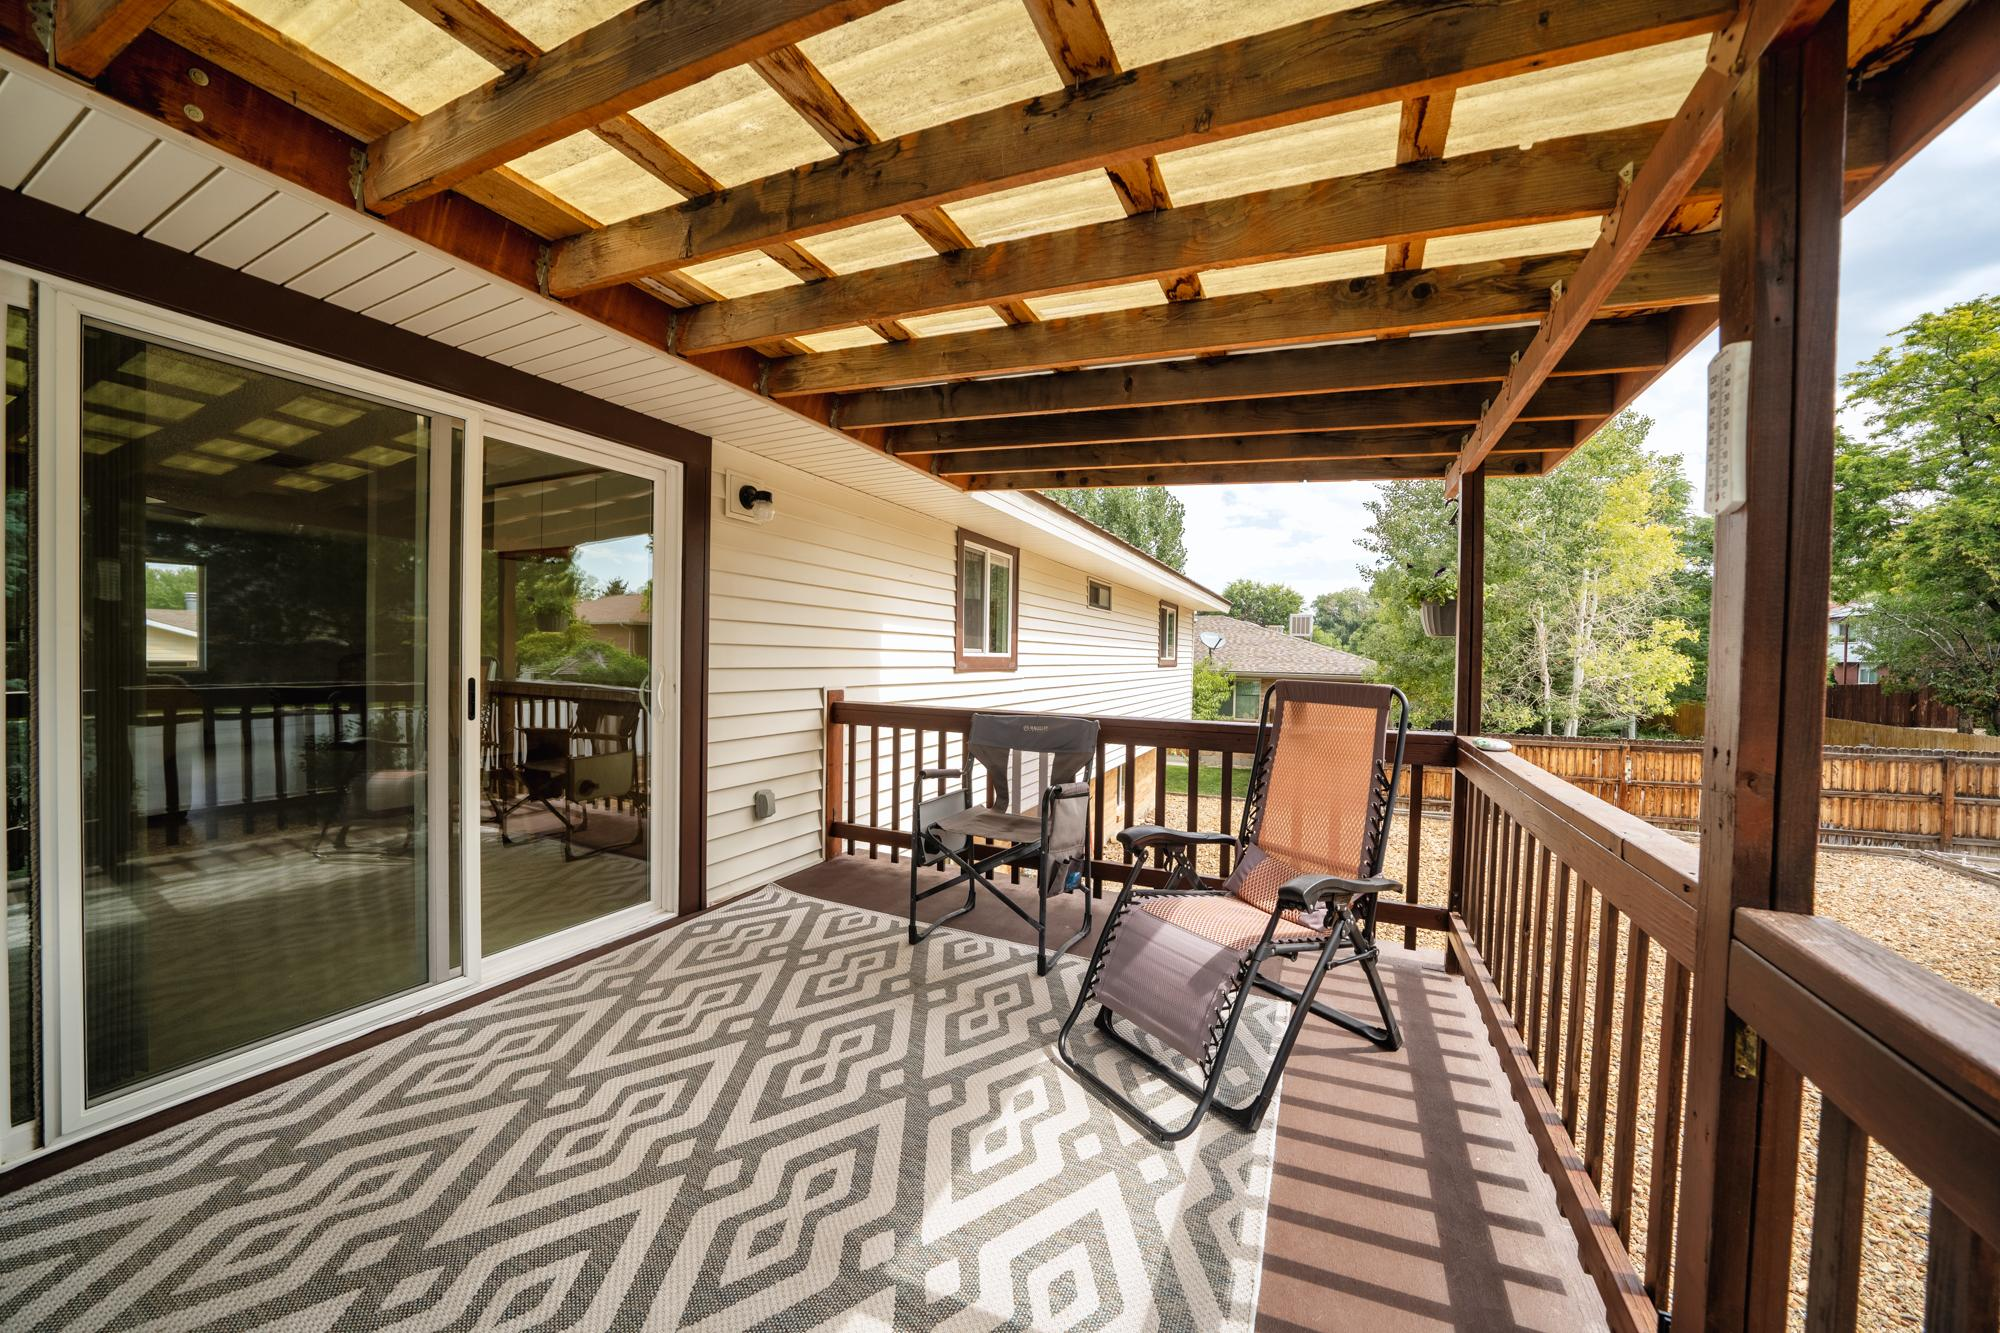 Covered Porch with Sliding Glass Door - 1311 Manchester Dr Montrose, CO 81401 - Atha Team Realty Agents